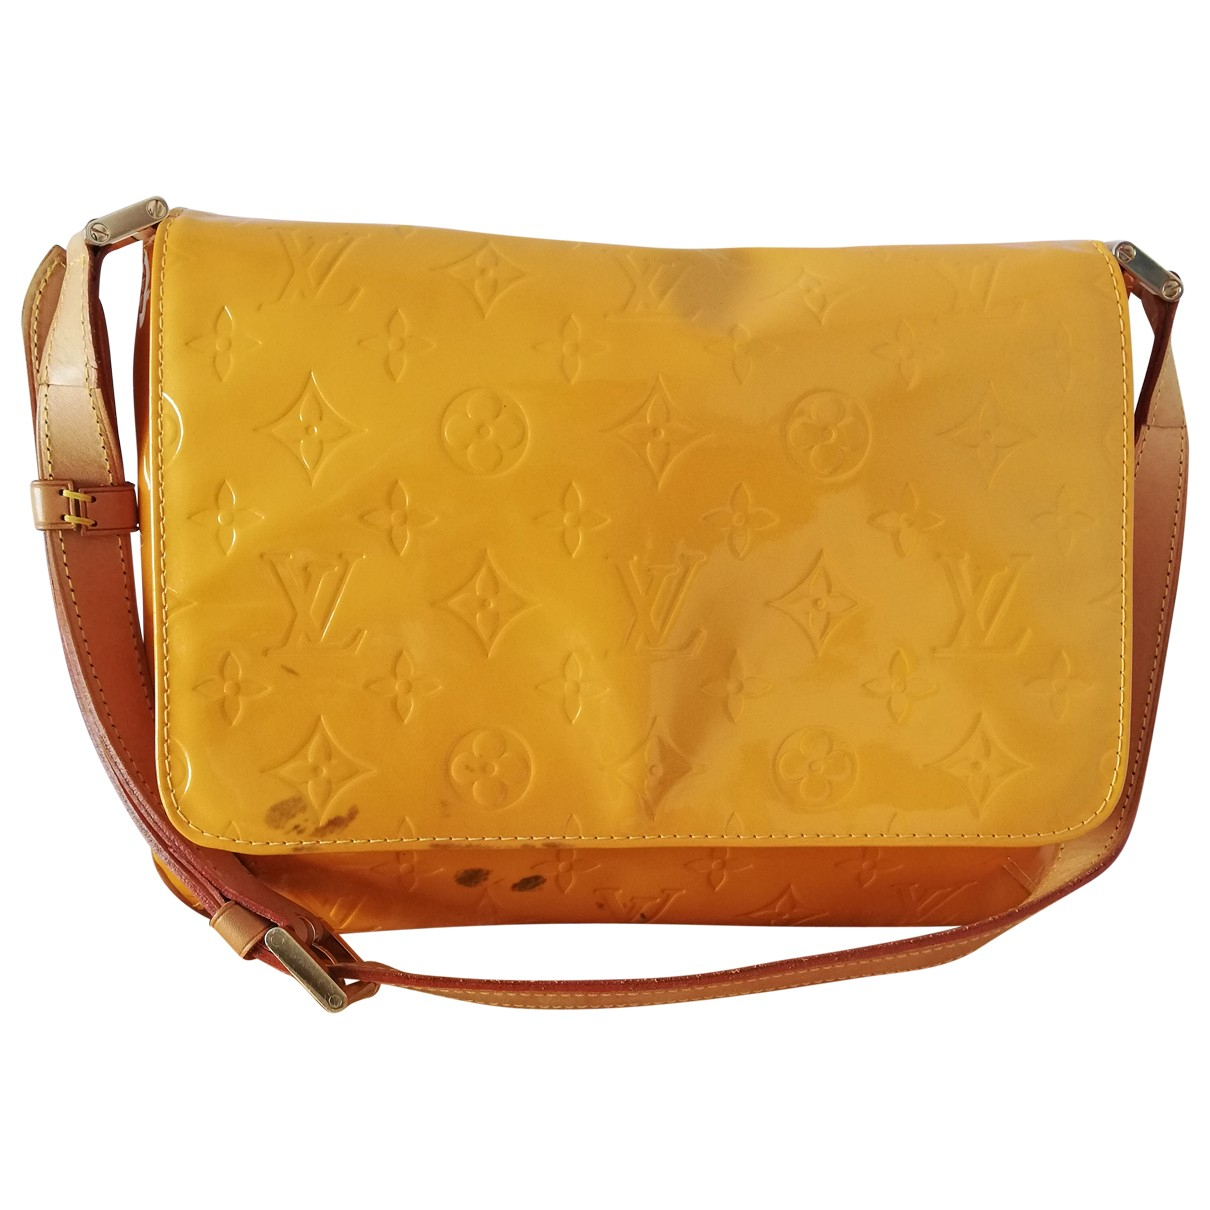 Louis Vuitton - Sac a main Thompson pour femme en cuir verni - jaune